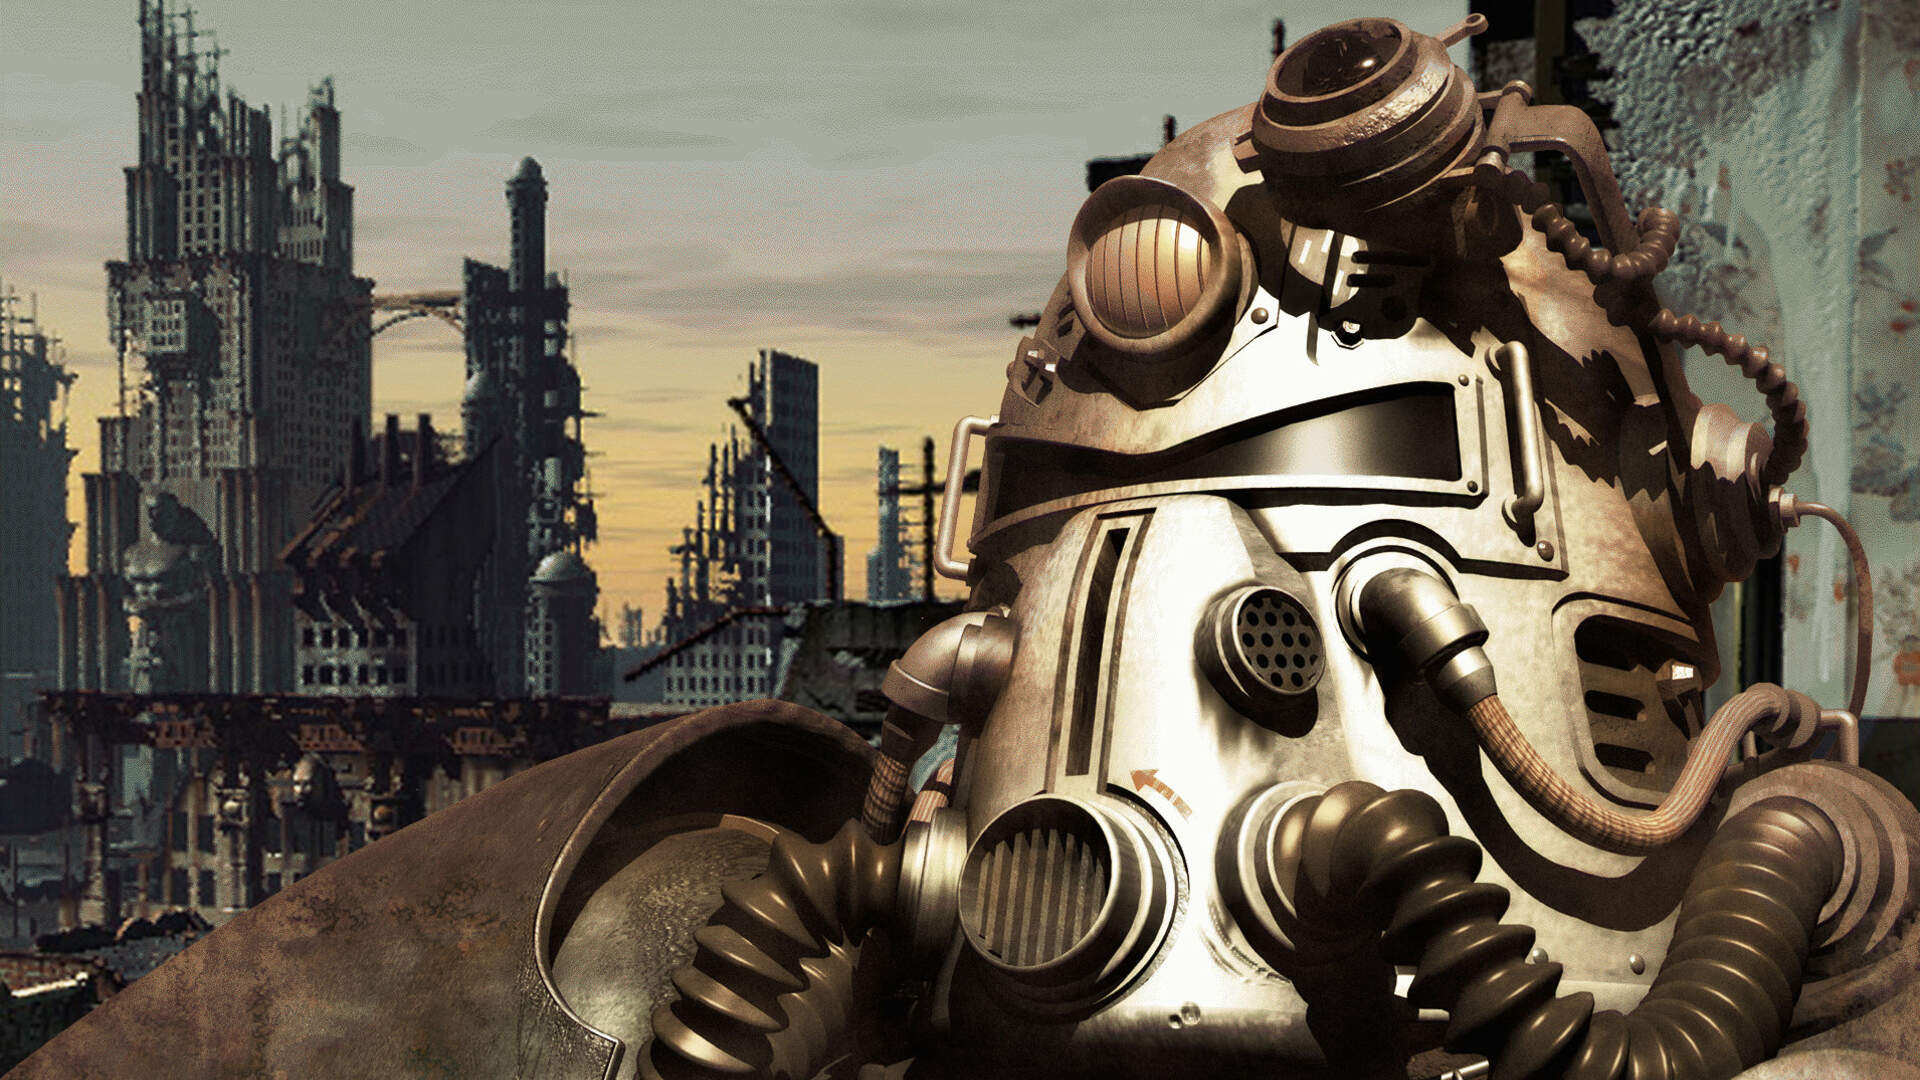 A Fallout TV Show Is Being Made By the Creators of Westworld